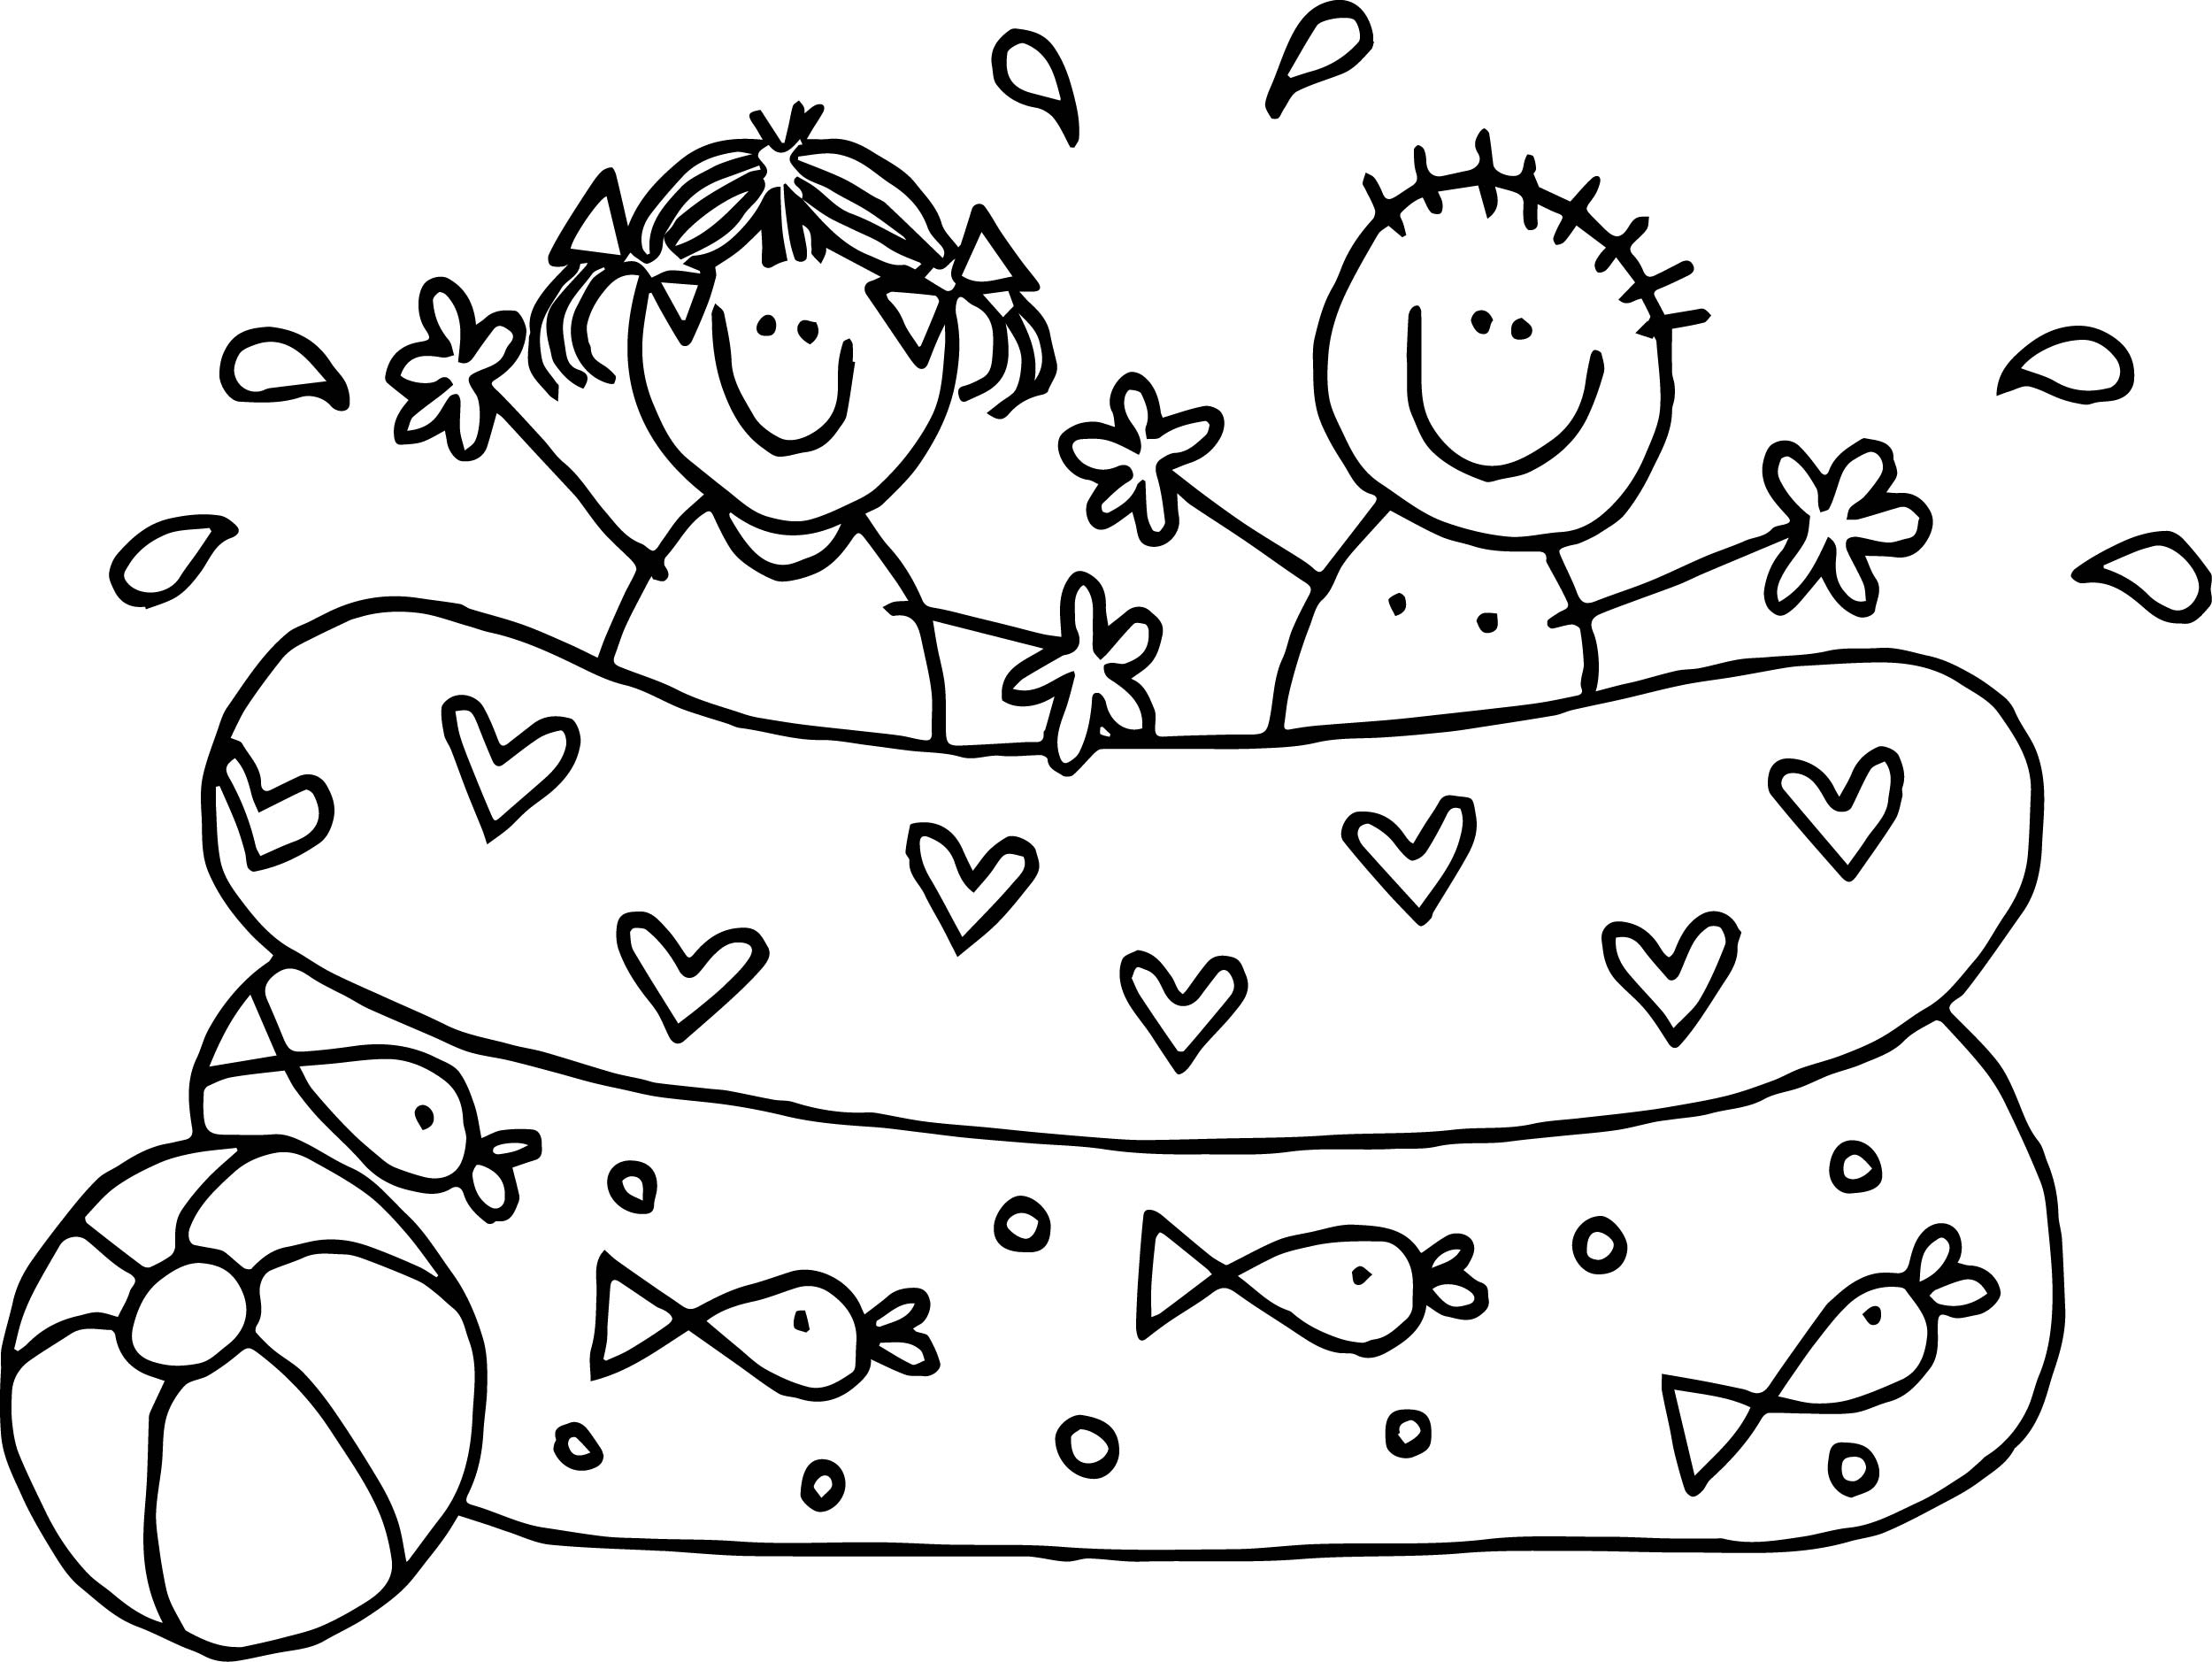 Summer Pool Printable Coloring Pages